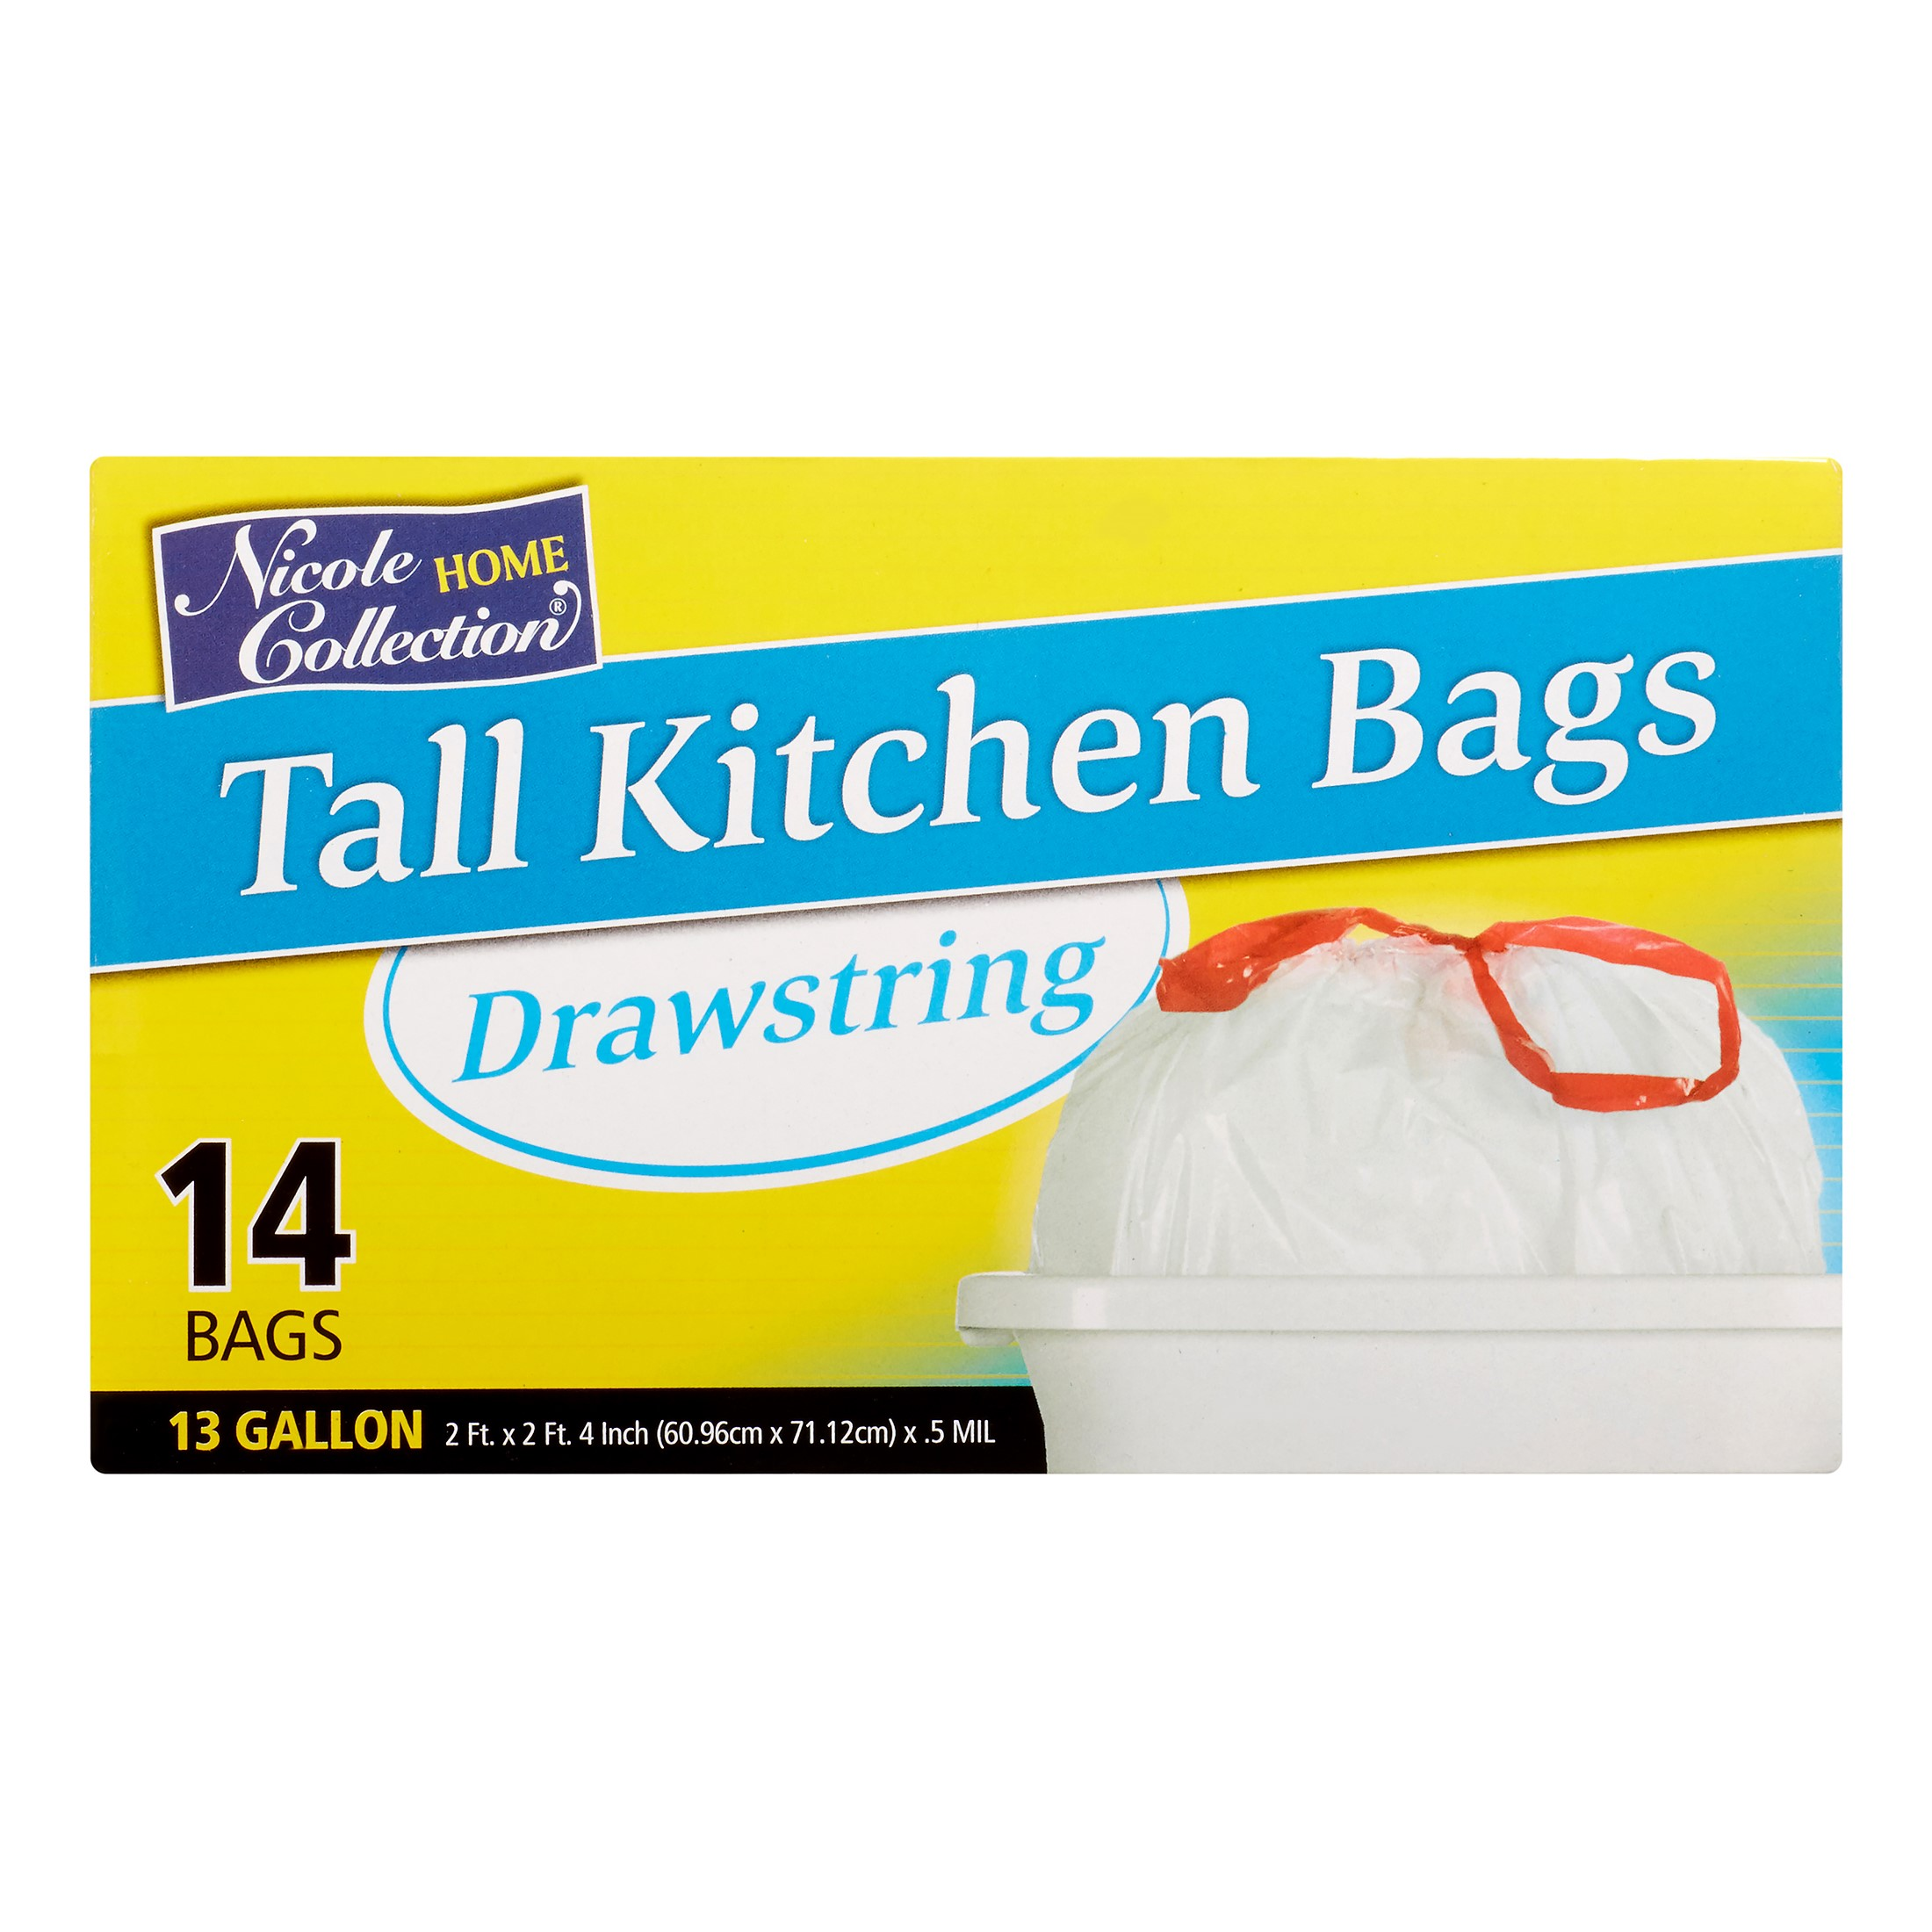 Nicole Home Collection Tall Kitchen Drawstring Trash Bags, 13 Gallon, White, 14 Ct